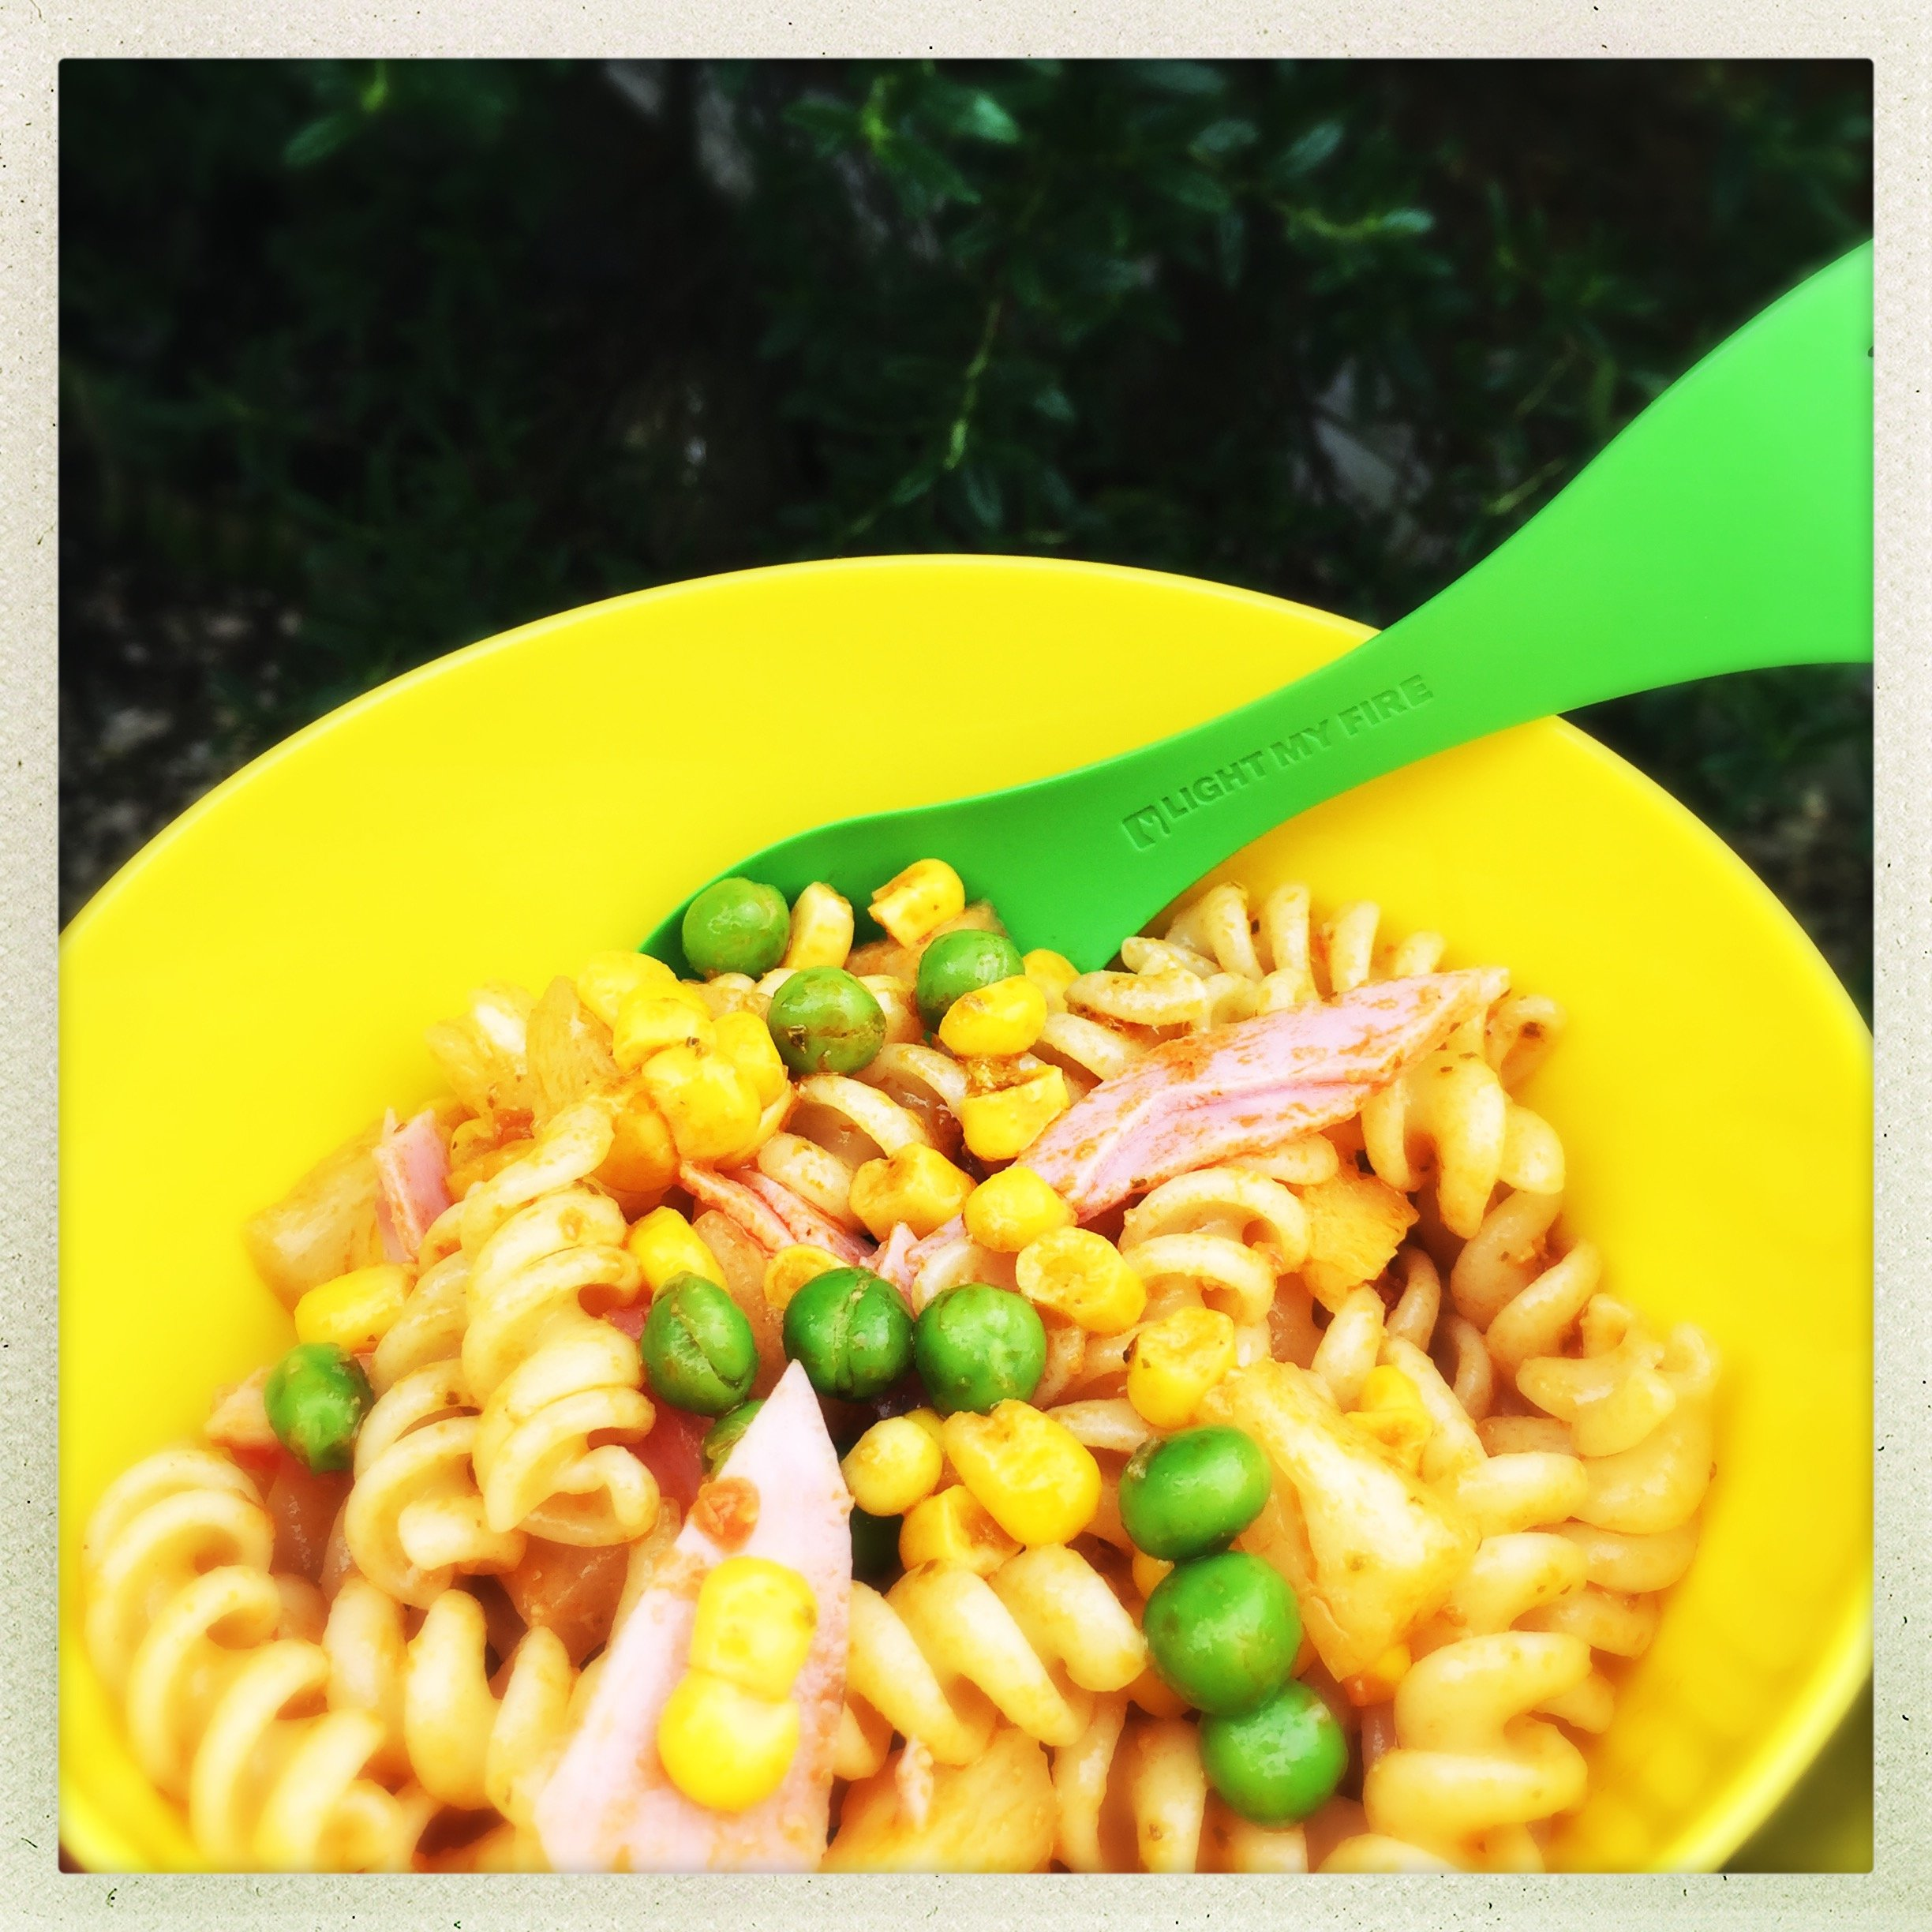 bright yellow plastic bowl filled with kids lunchbox pasta salad with ham, peas, pineapples, sweetcorn and a green plastic spork to eat it with